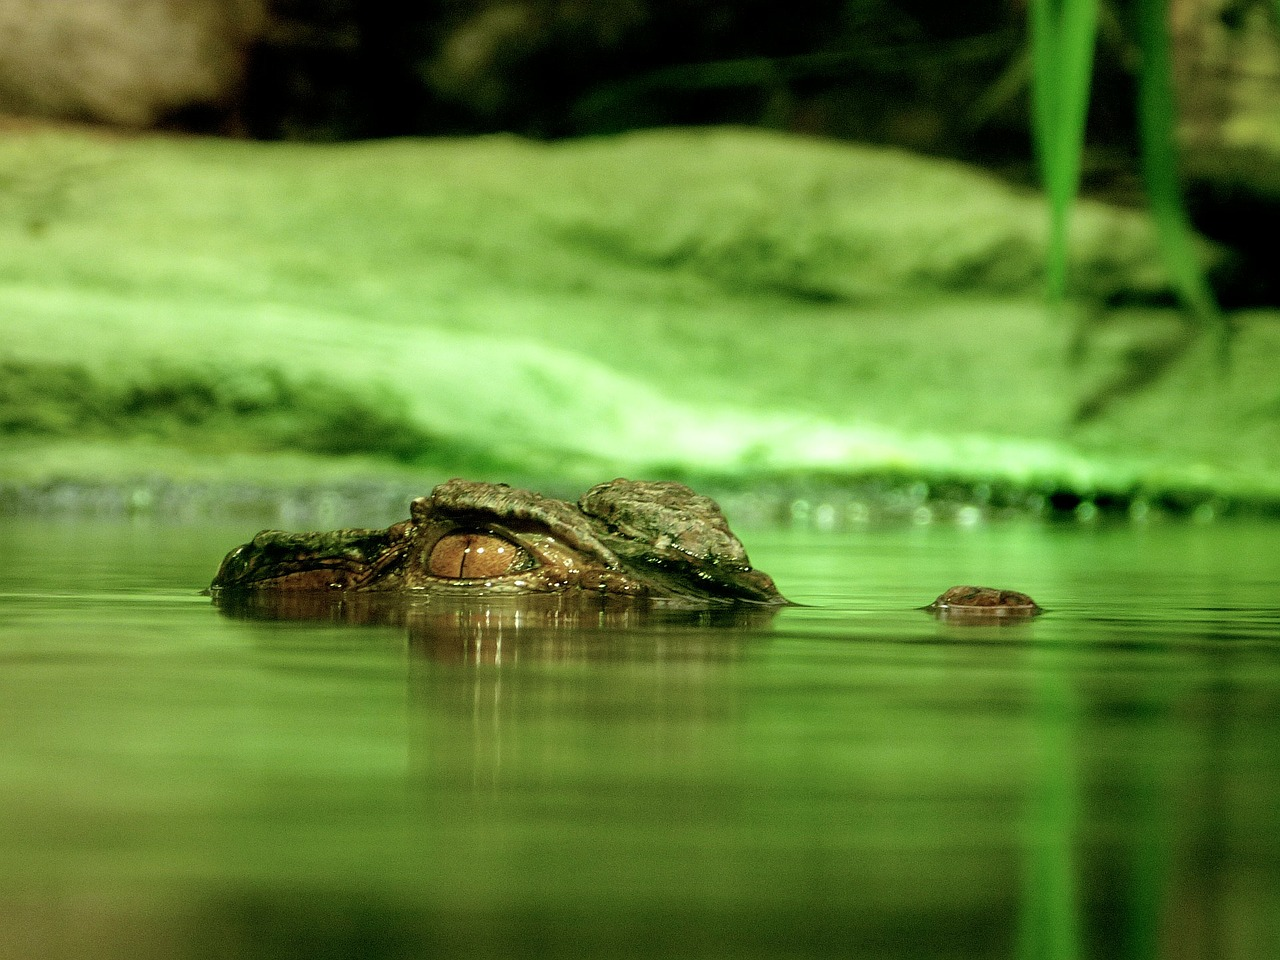 Alligators can hide in almost any body of water, and strike when you least expect it.